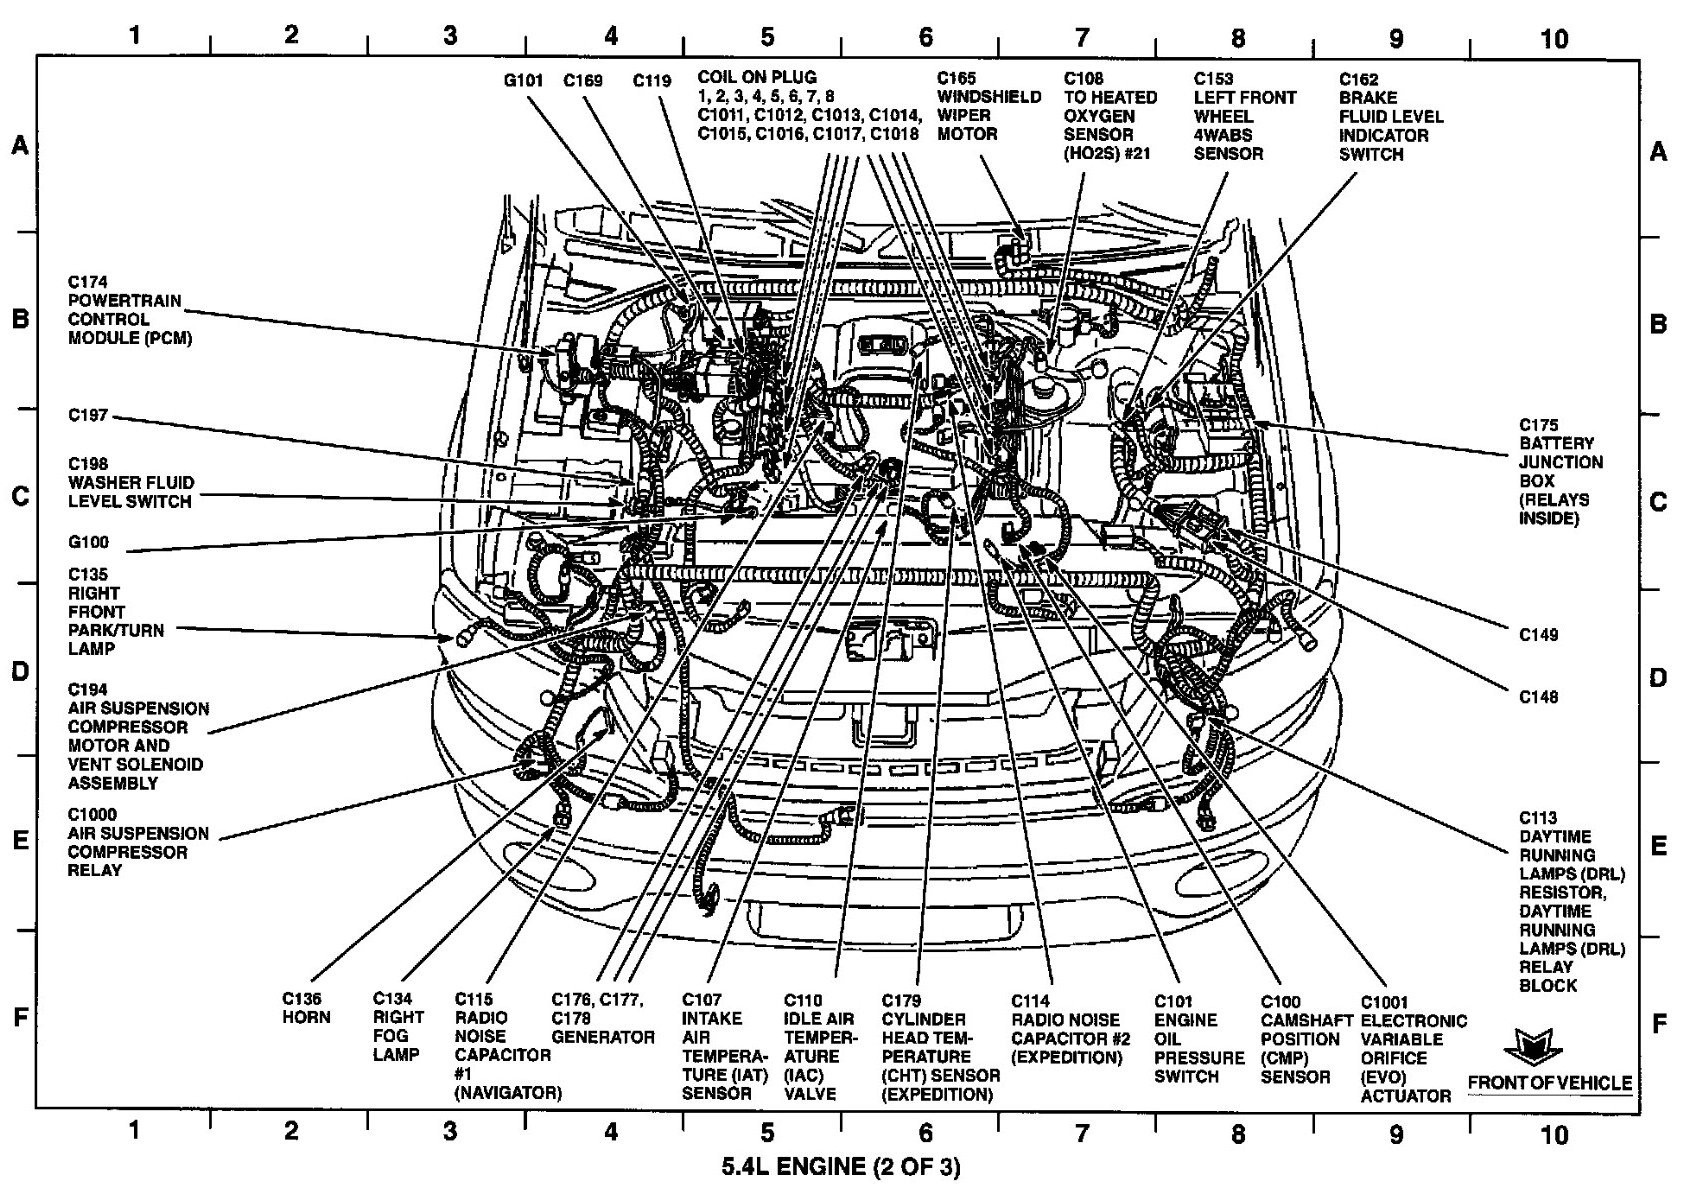 Engine Wiring Diagram 1996 Bmw 328i Electrical Schematics 1994 325i 328is Wire Center U2022 2000 528i Vacuum